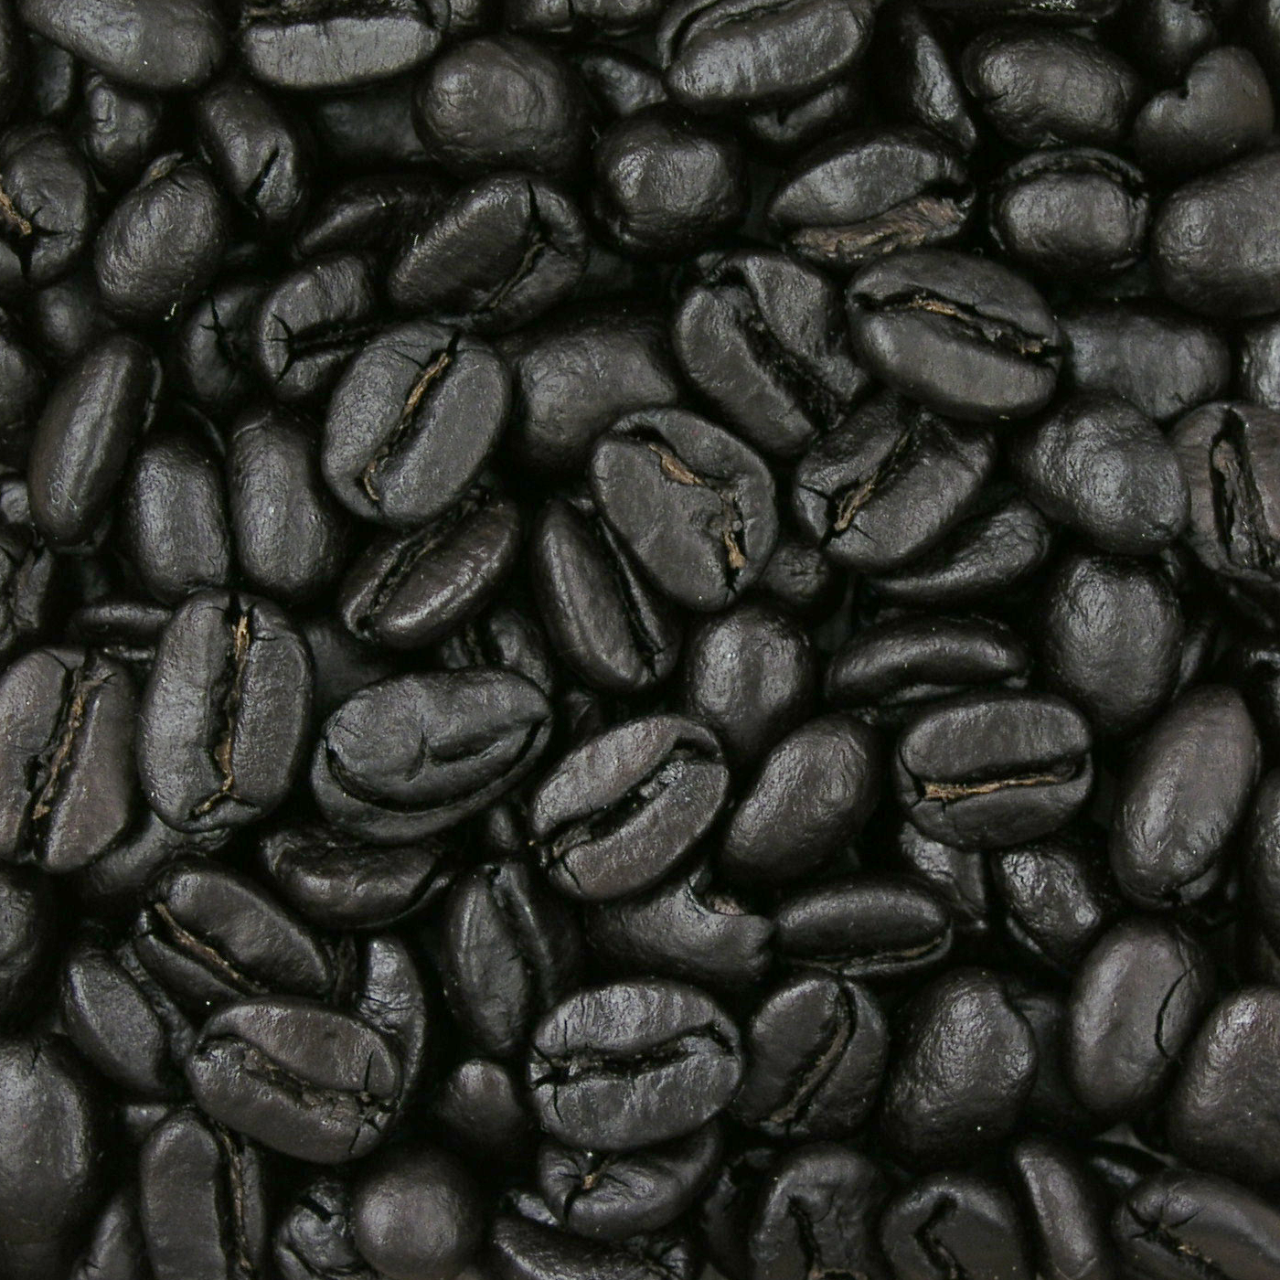 250 °C (482 °F) Spanish Roast Extremely dark brown, nearly black and very shiny, charcoal and tar tones dominate, flat, with thin body.